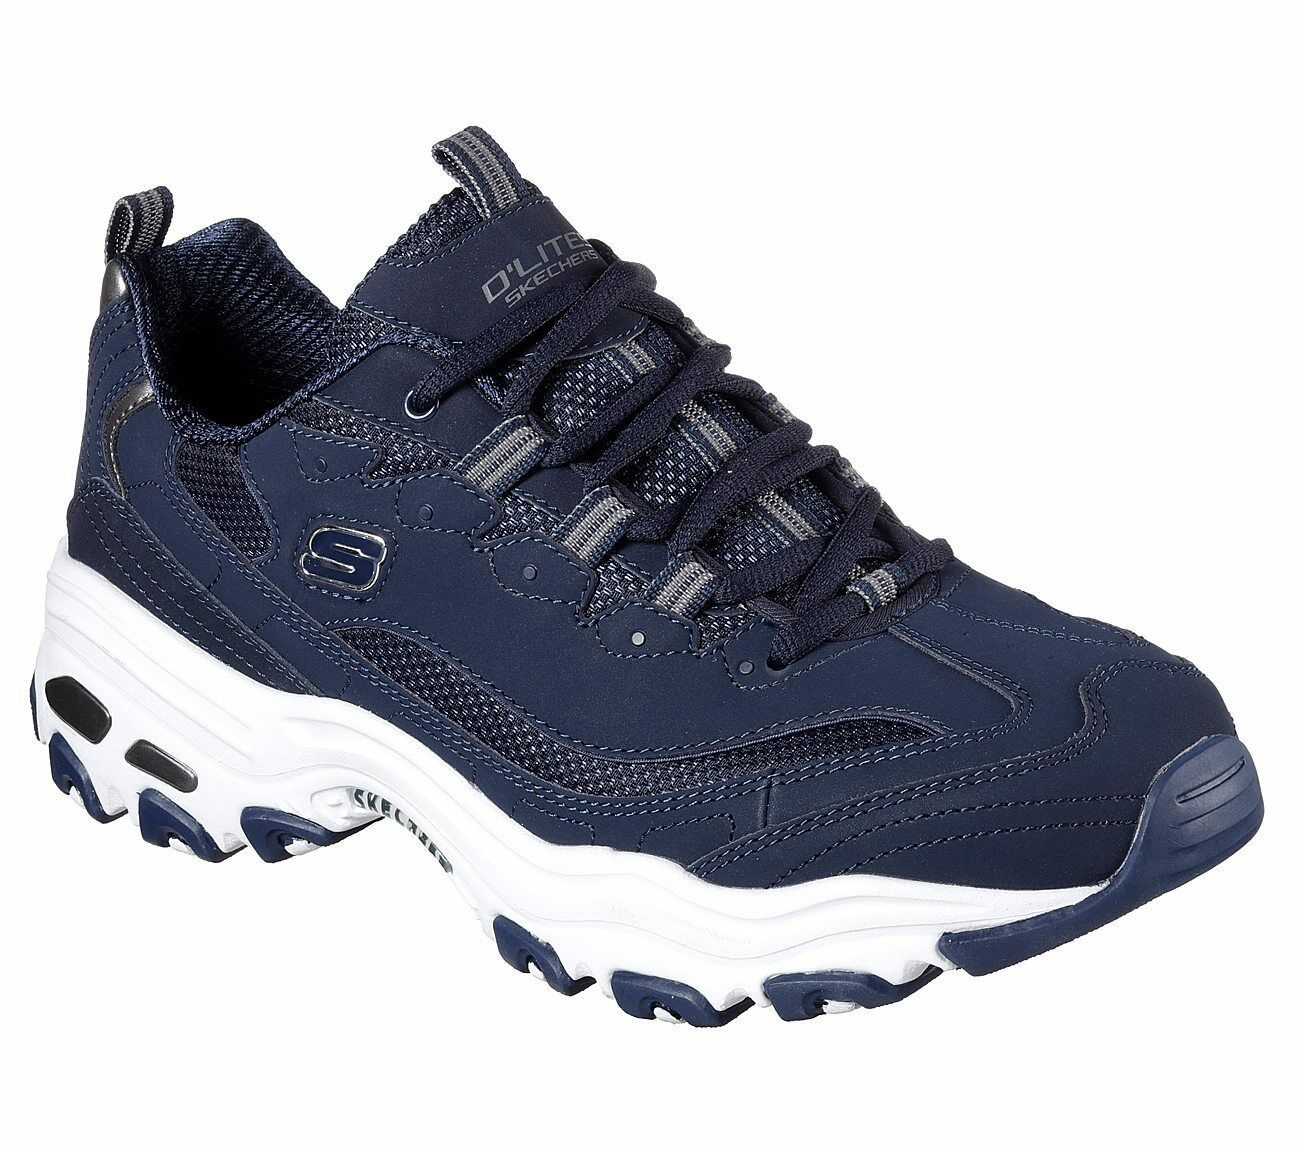 Skechers D'Lites Navy shoes Men's Memory Foam Sport Comfort Casual Leather 52675